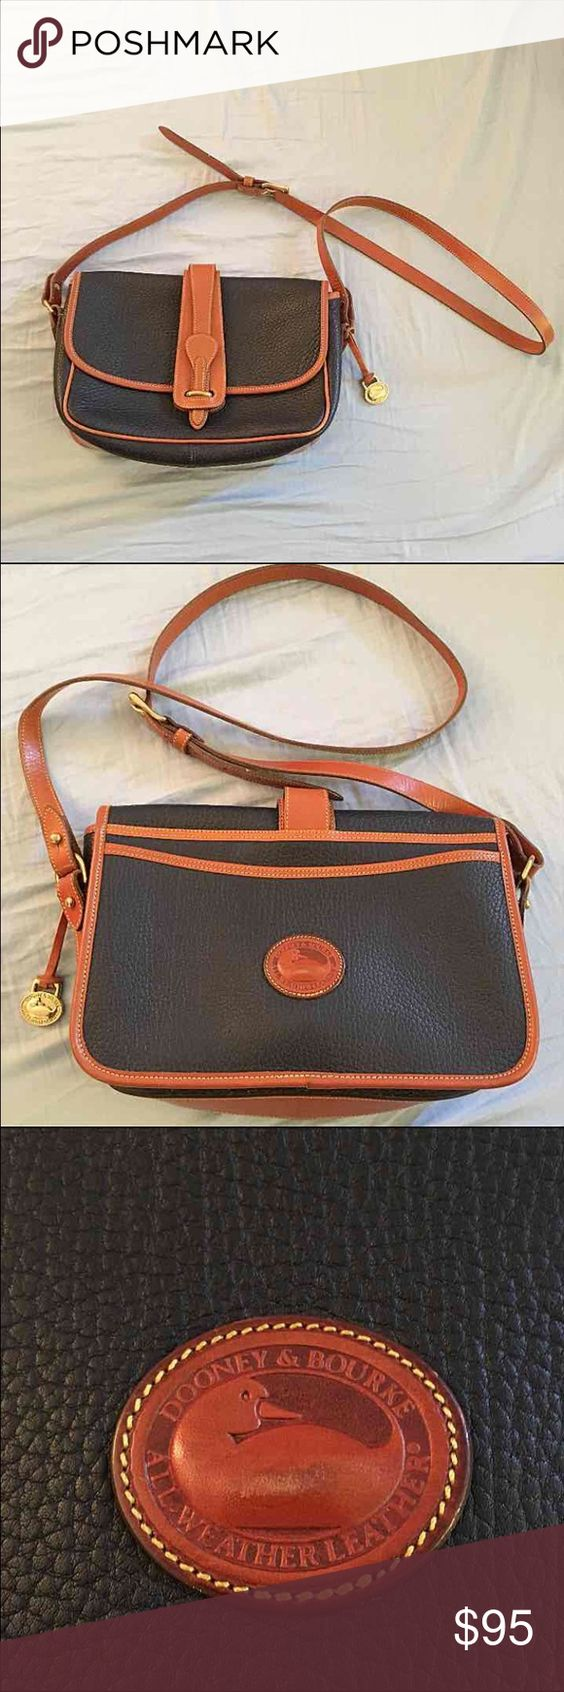 Dooney & Bourke purse Navy and tan leather with suede interior. 100% authentic Dooney & Bourke Bags Shoulder Bags